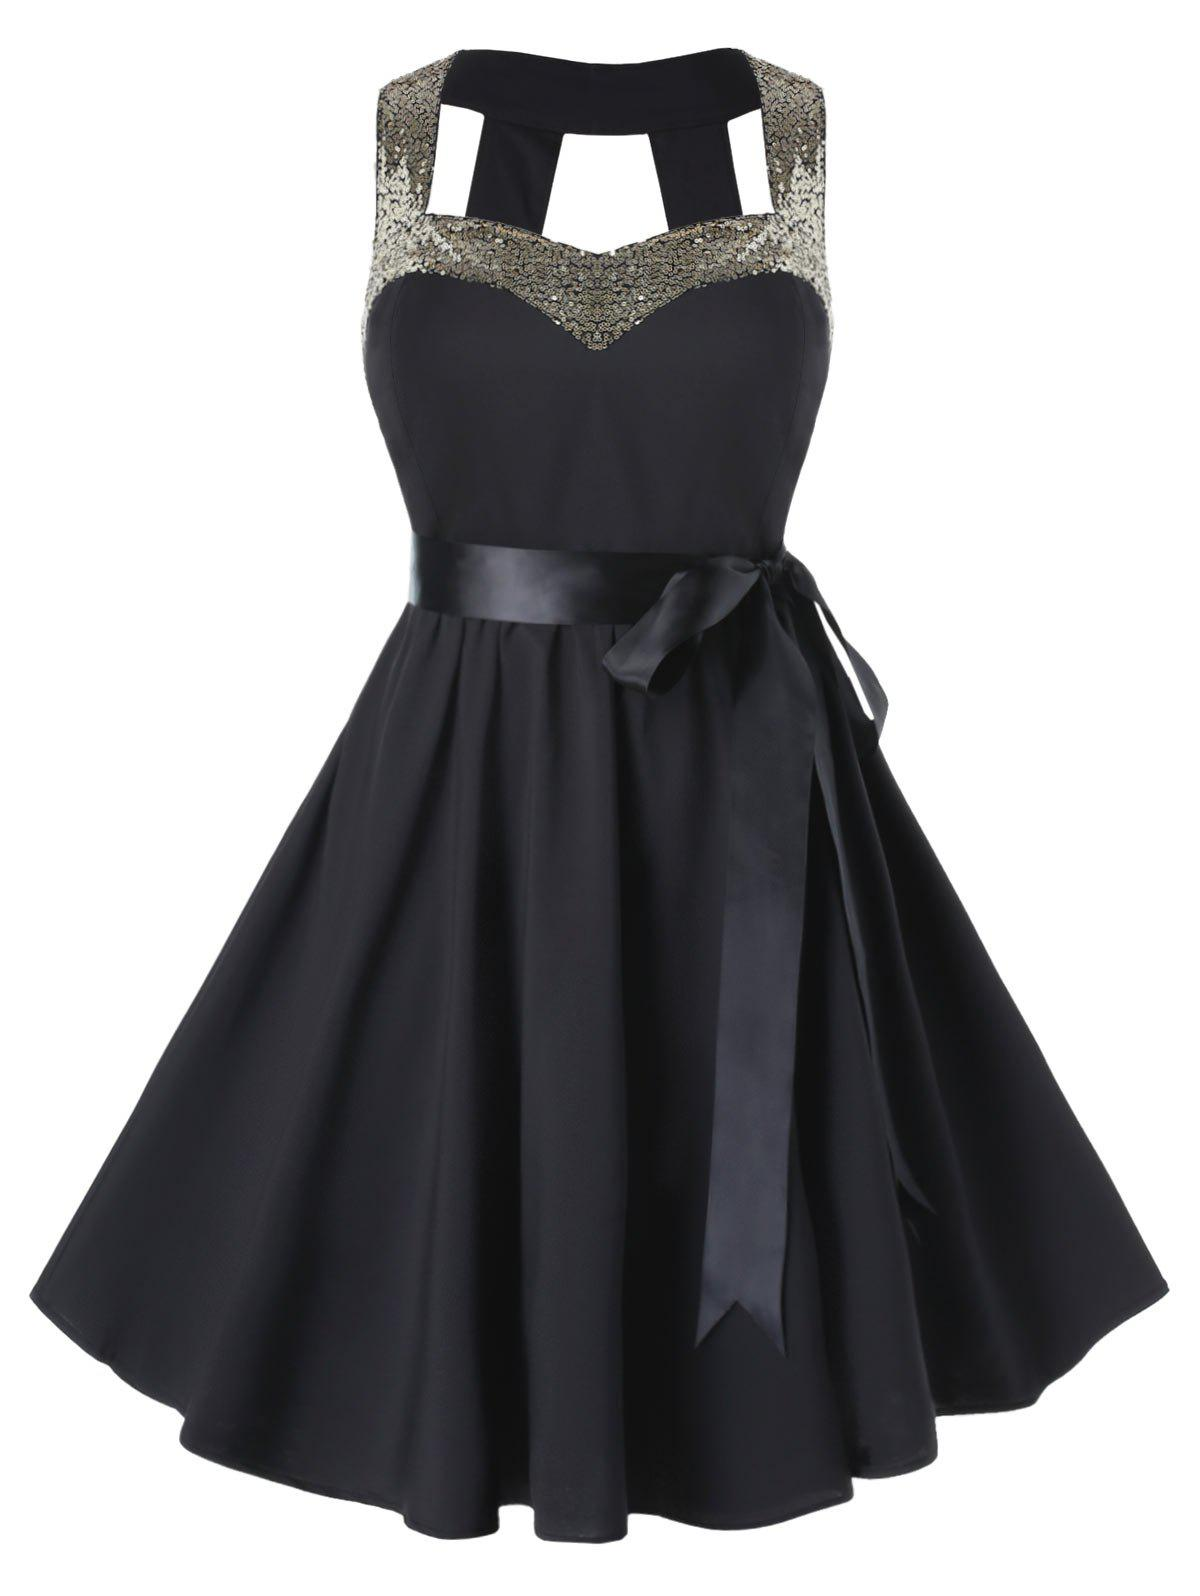 Plus Size Sequined High Waist Fit And Flare Vintage Dress